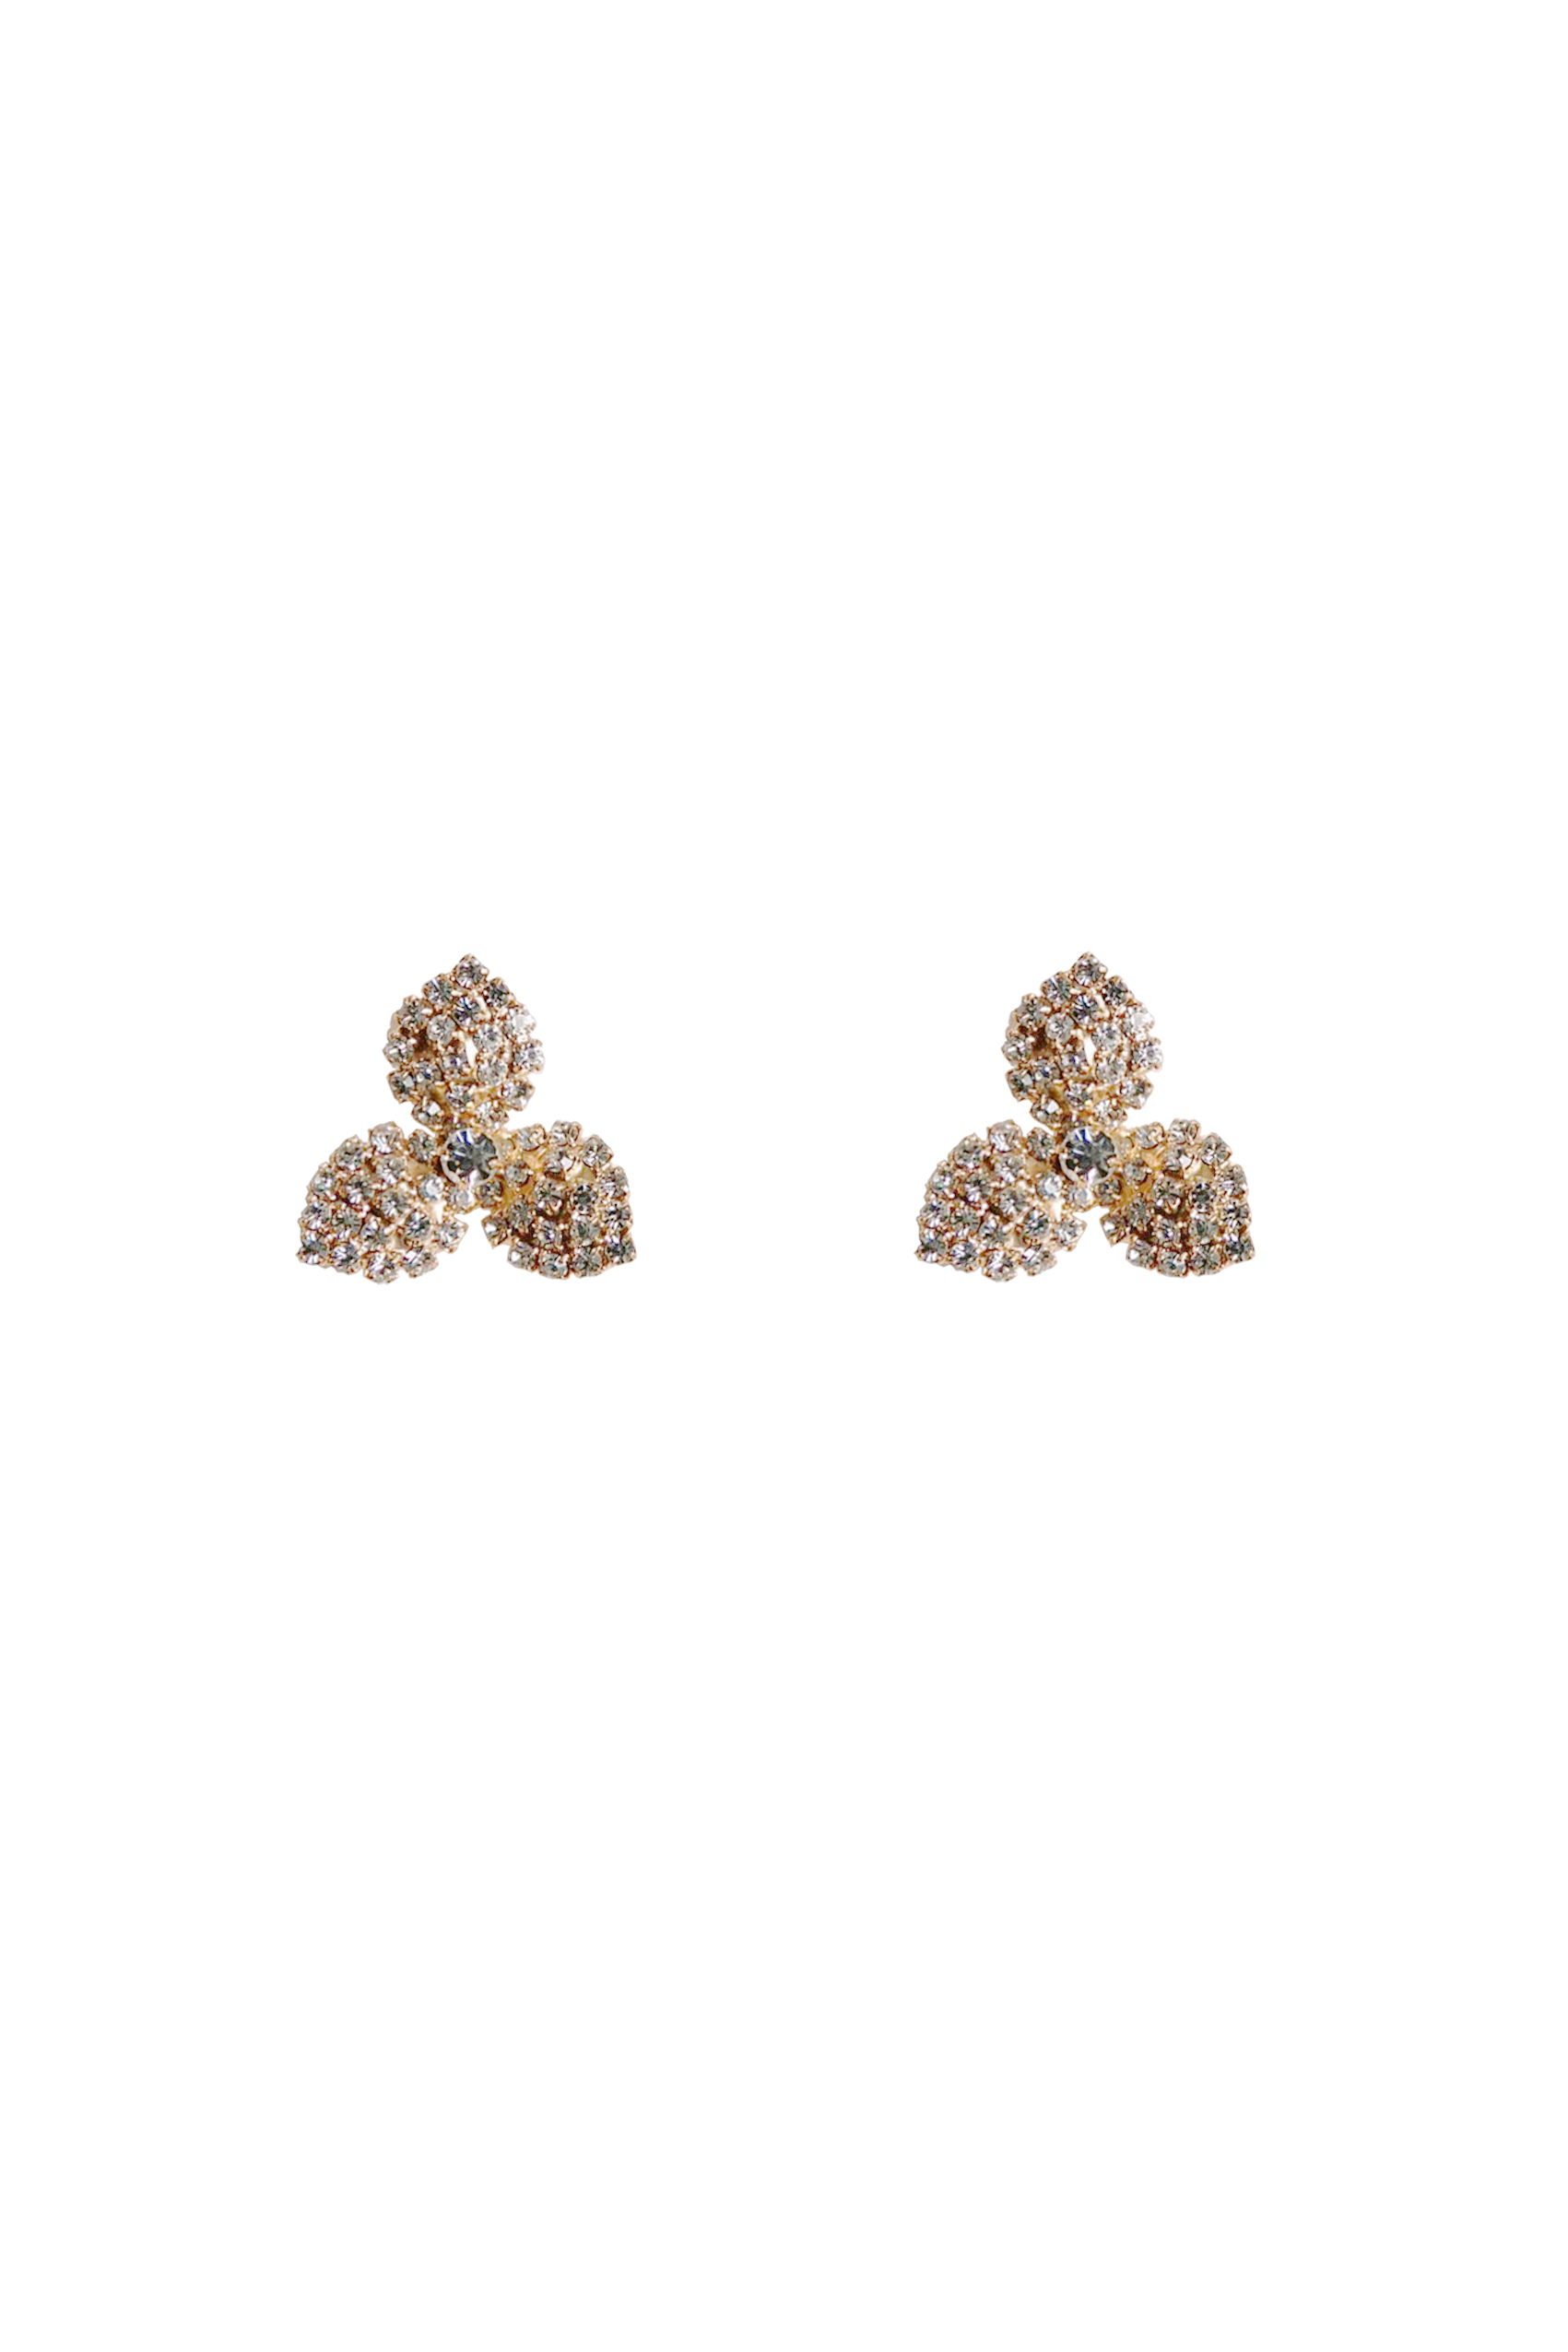 [RENTAL][Celeste Stud Earrings Gold]by JENNIFER BEHR